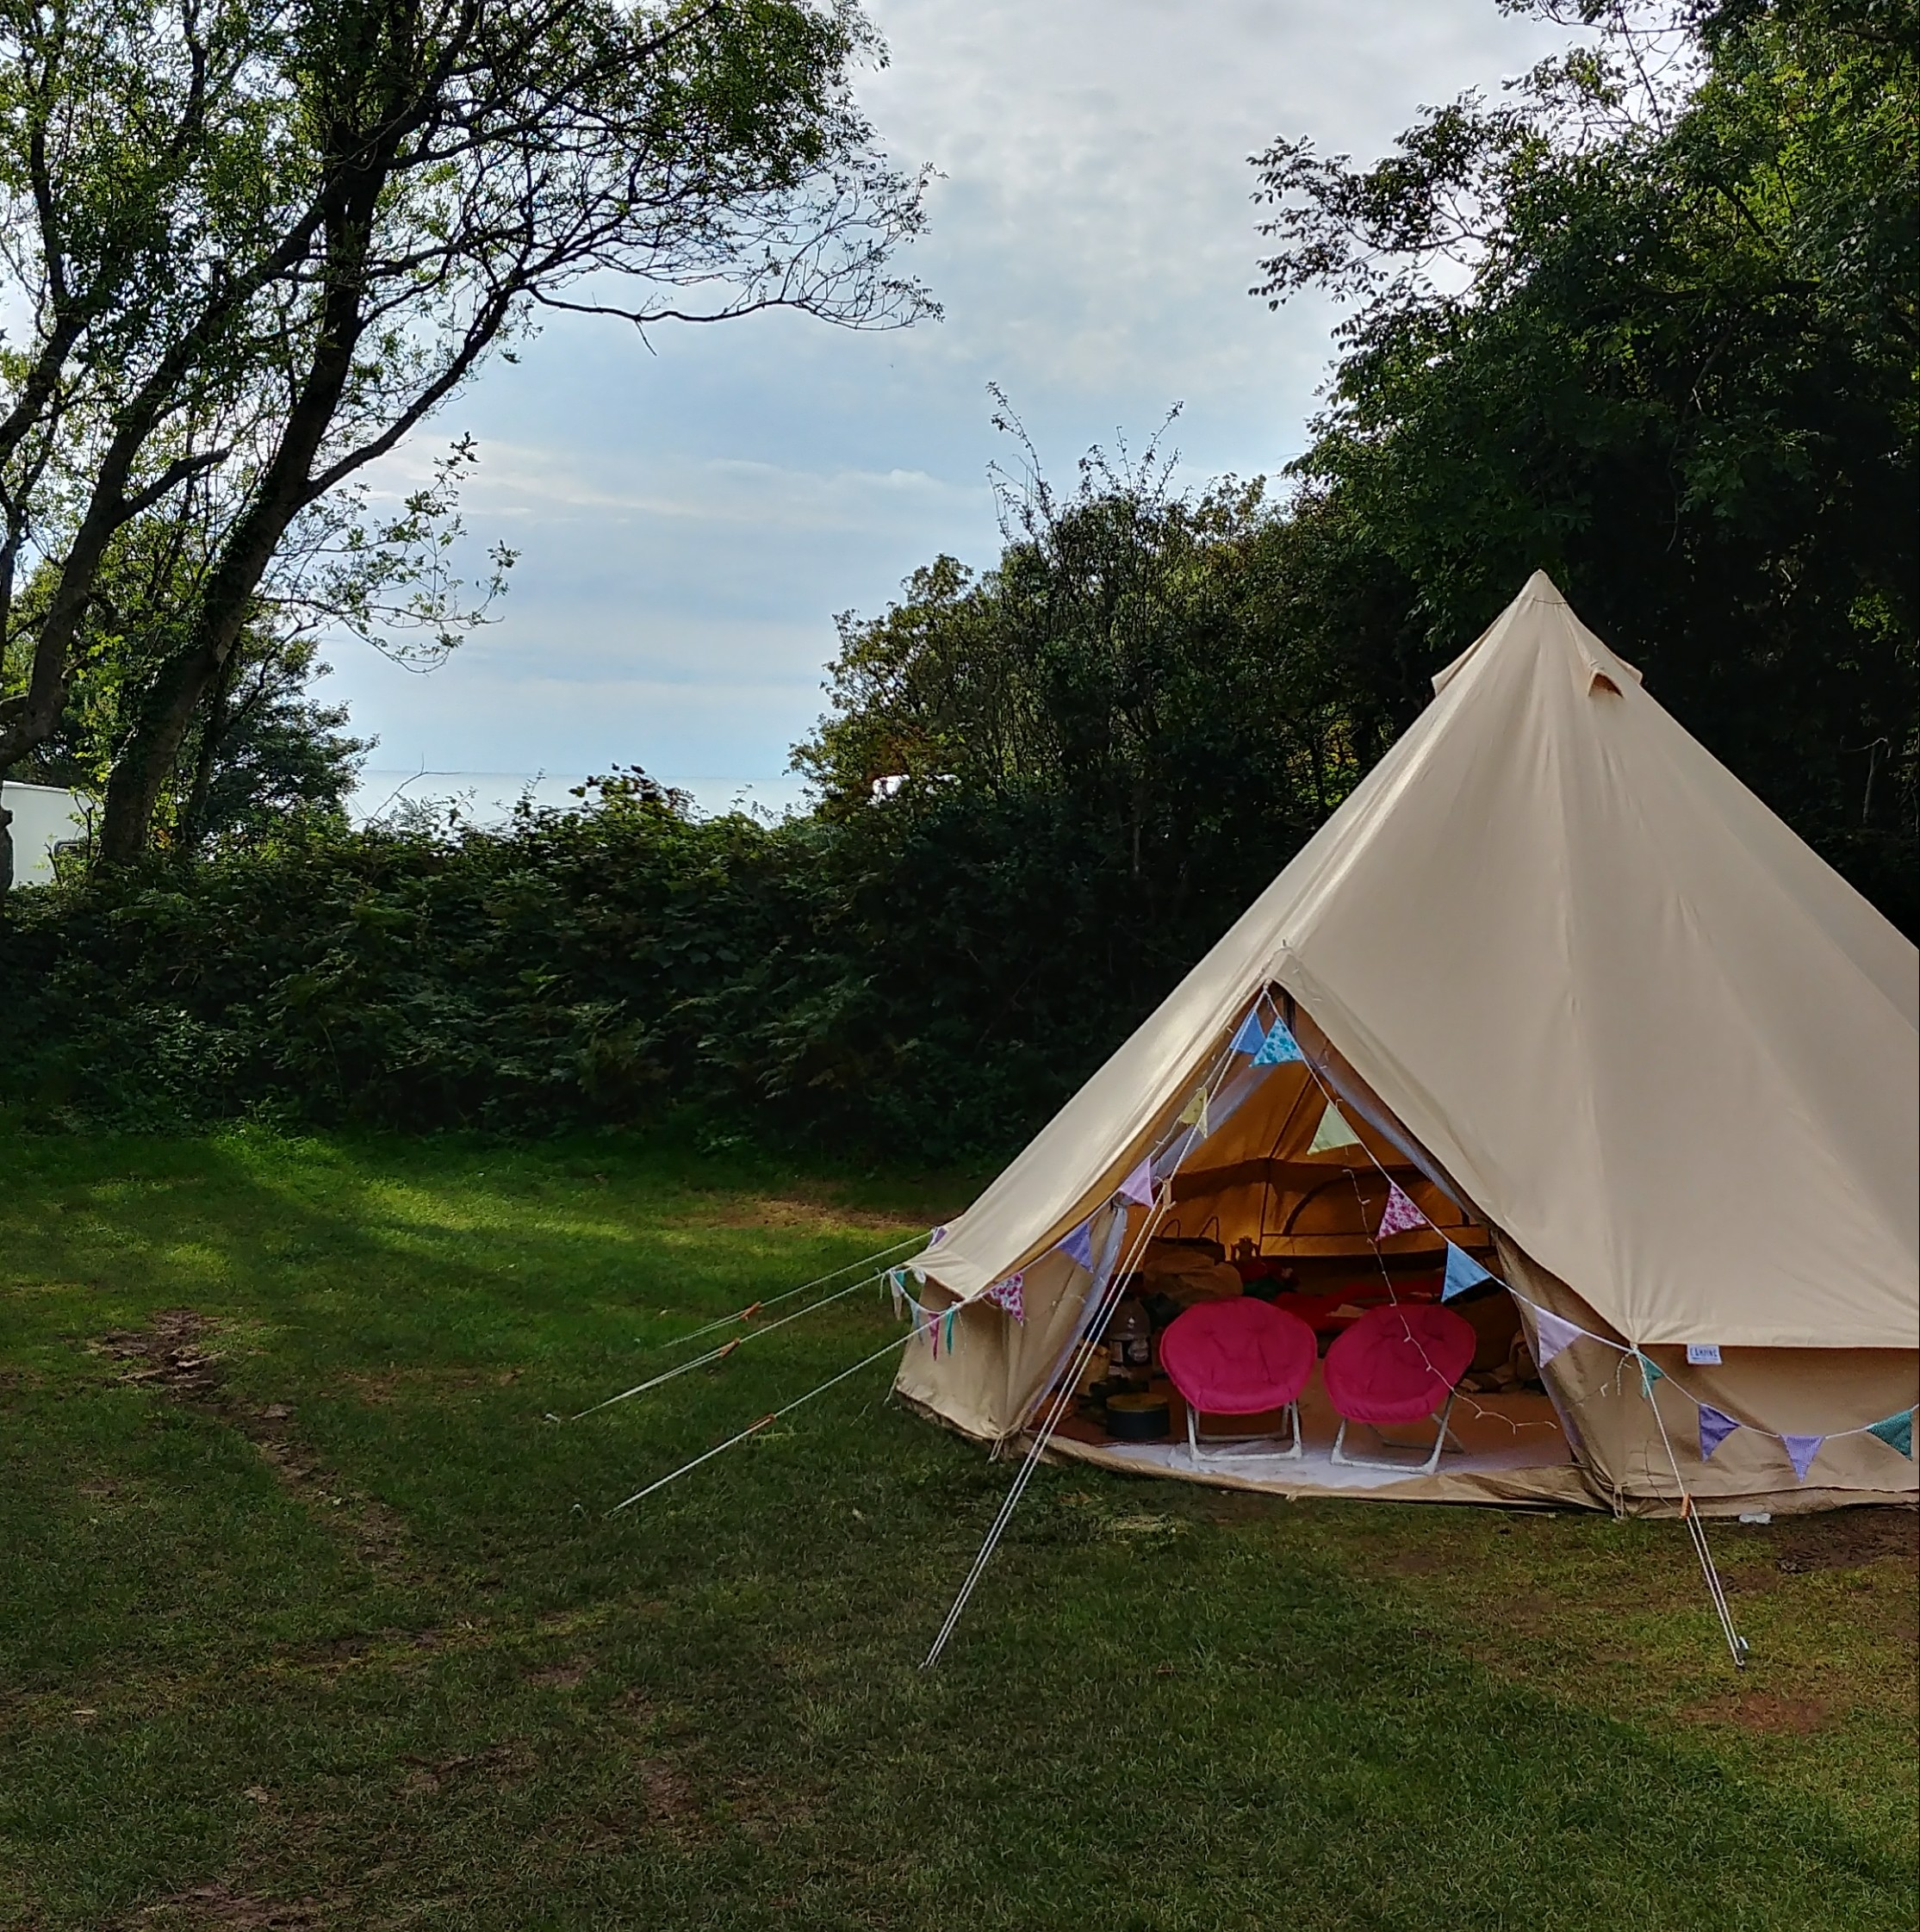 Back at Aberafon, this time in a bell tent with bunting.